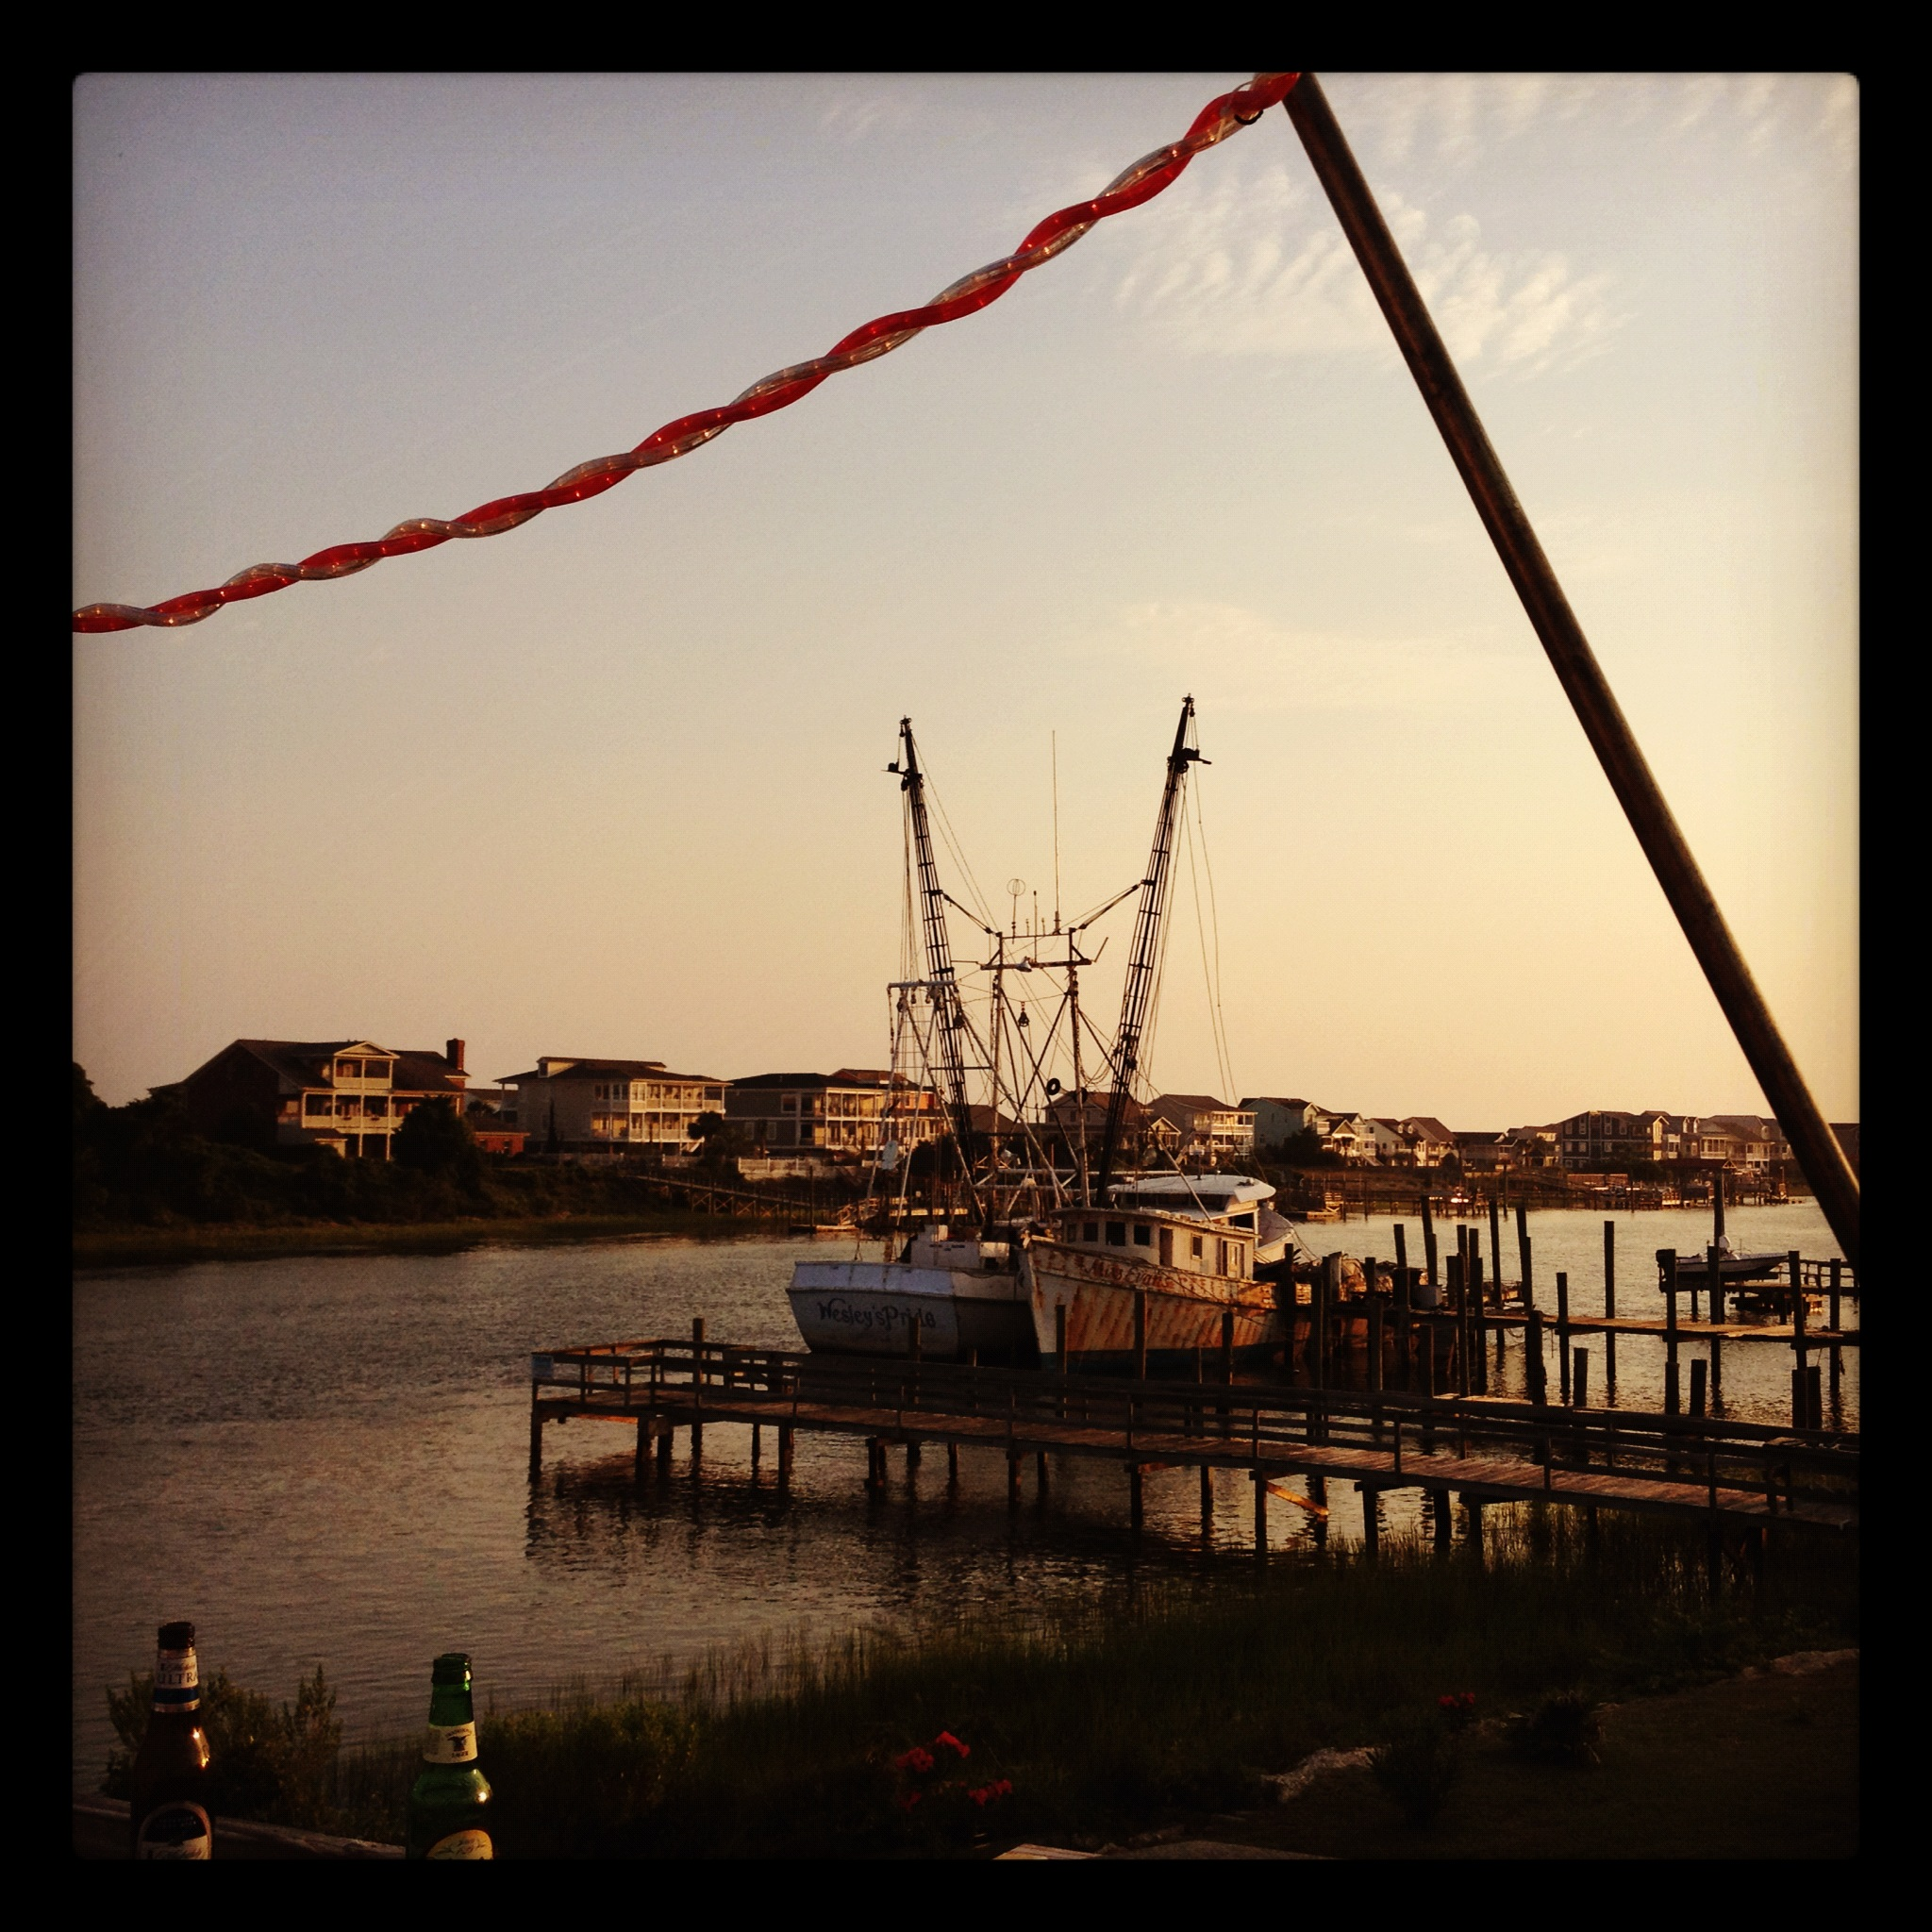 Holden Beach Shrimp Boat - from the Provision Company Deck